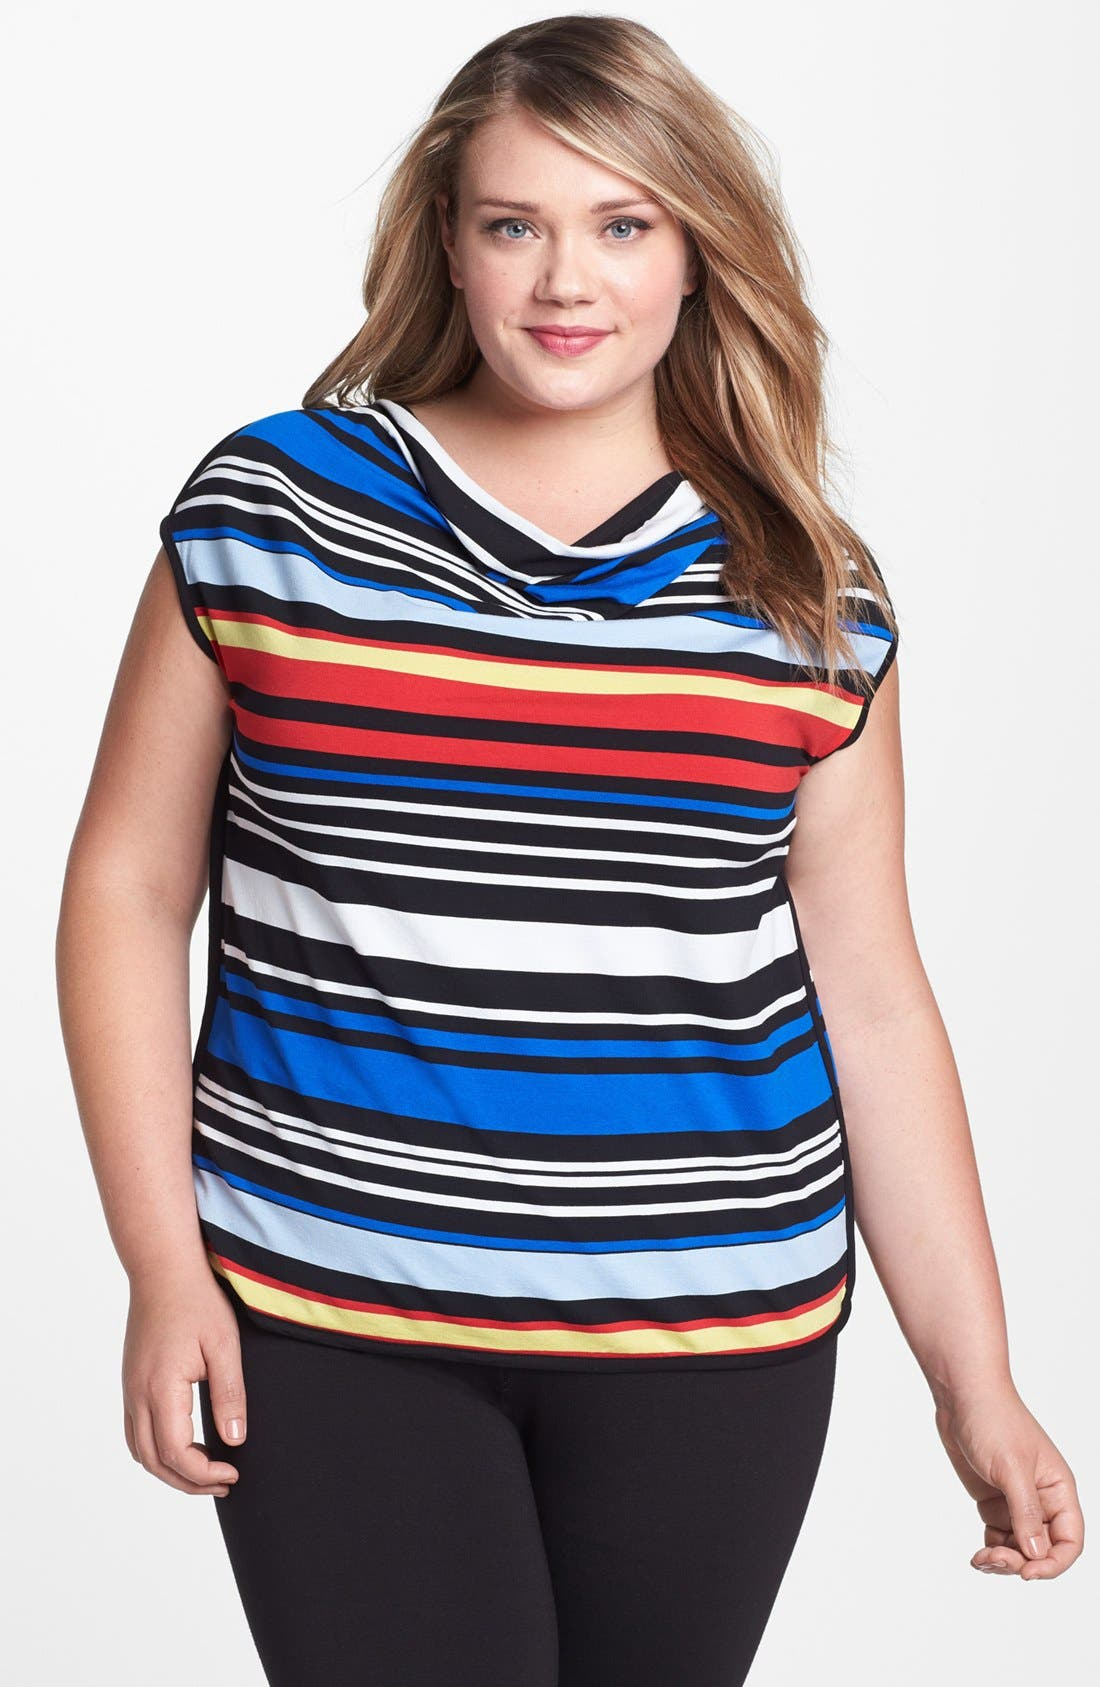 Alternate Image 1 Selected - Vince Camuto Stripe Cowl Neck Tee (Plus Size)